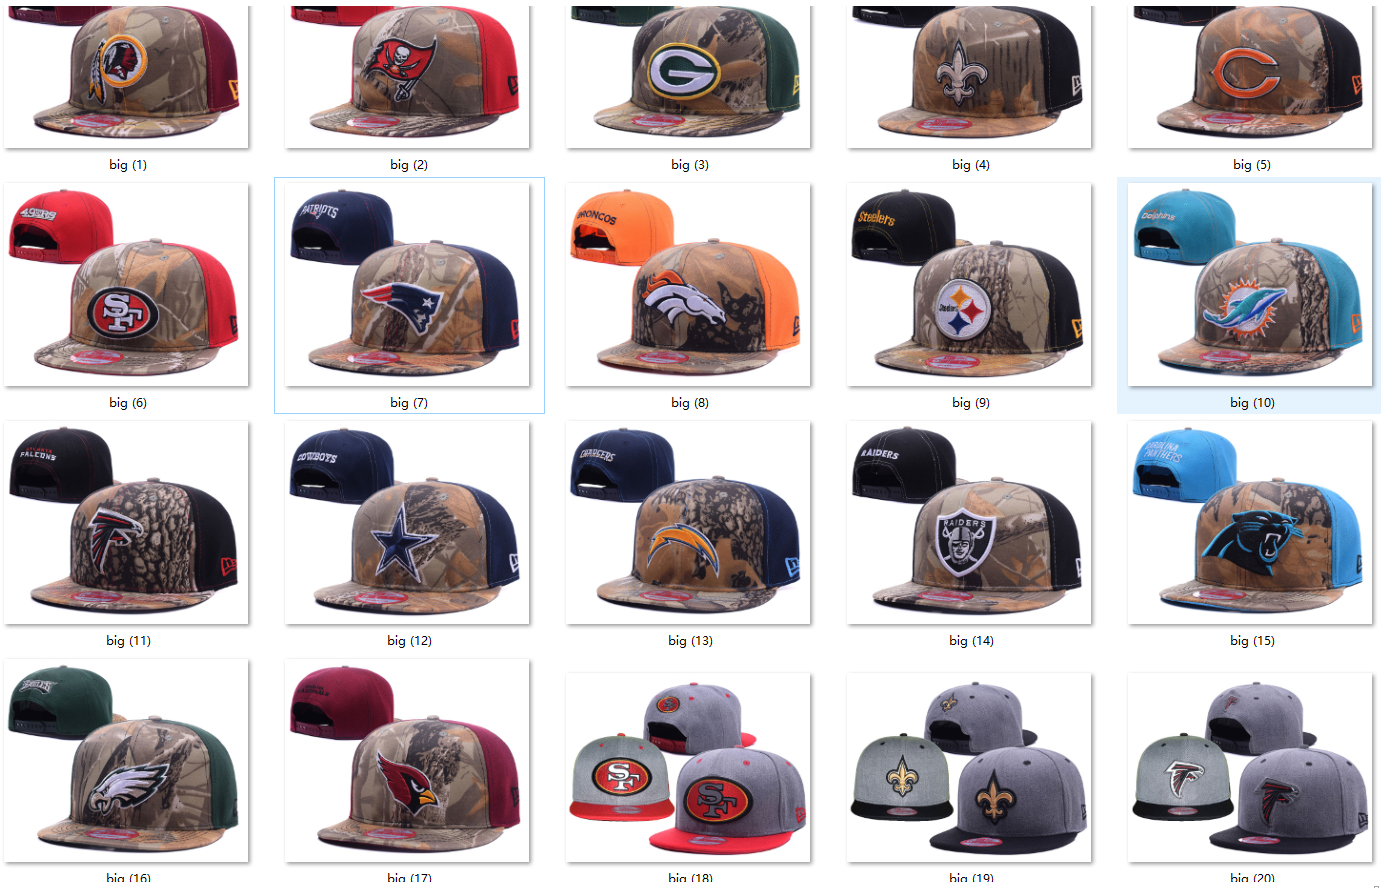 pretty nice 0d459 1cea3 Wholesale NFL hats NBA caps snapback caps hats team cap ...